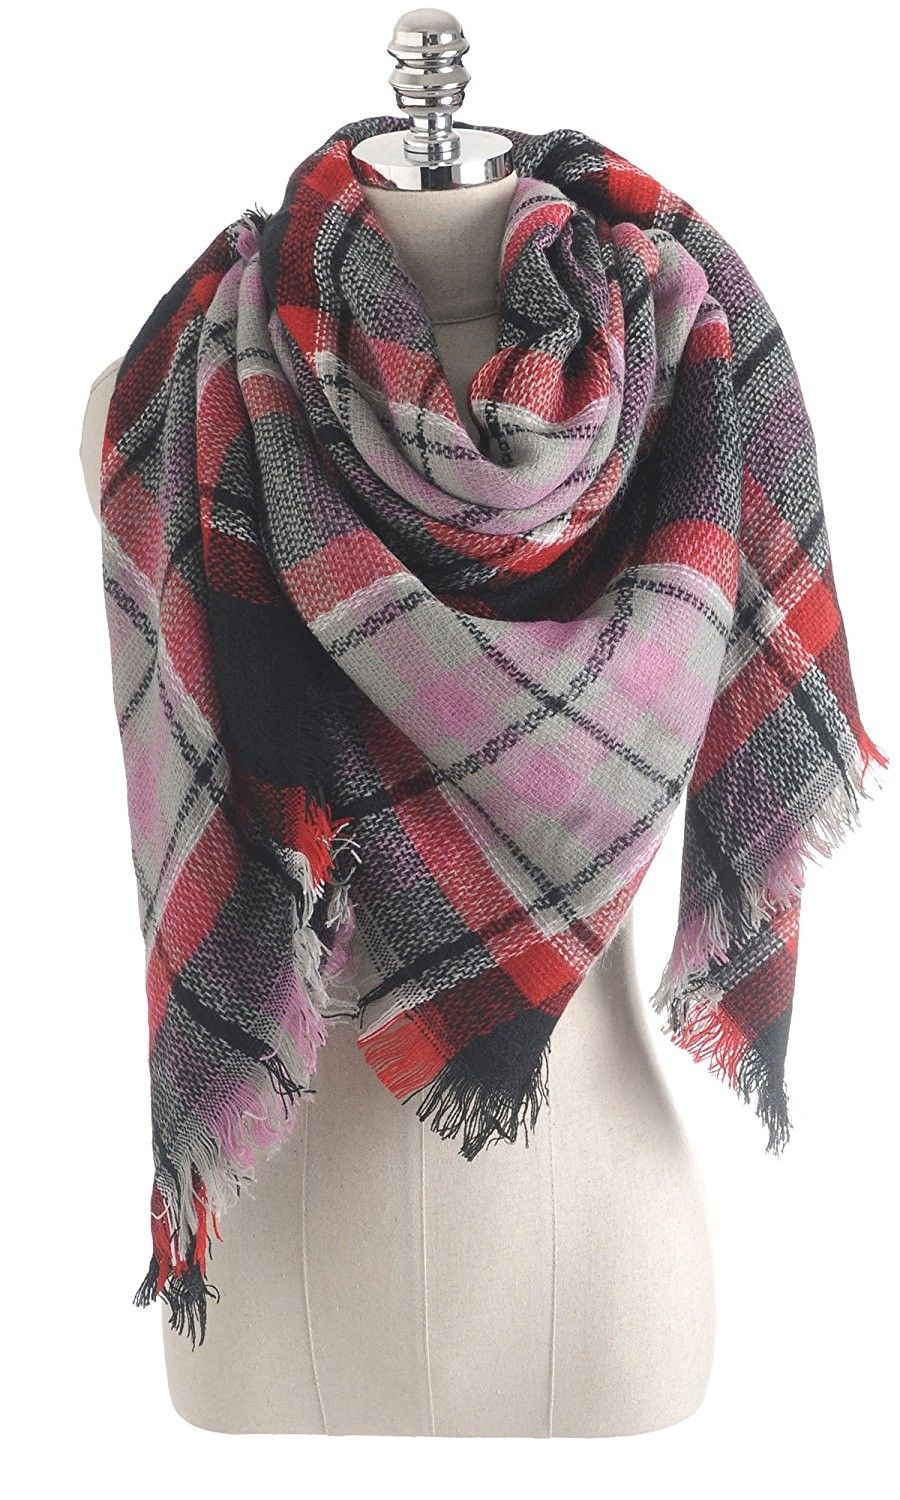 Checks Scarf  Design Plaid Warm  Tartan Winter Shawl Unisex Ladies Men Neck Wrap